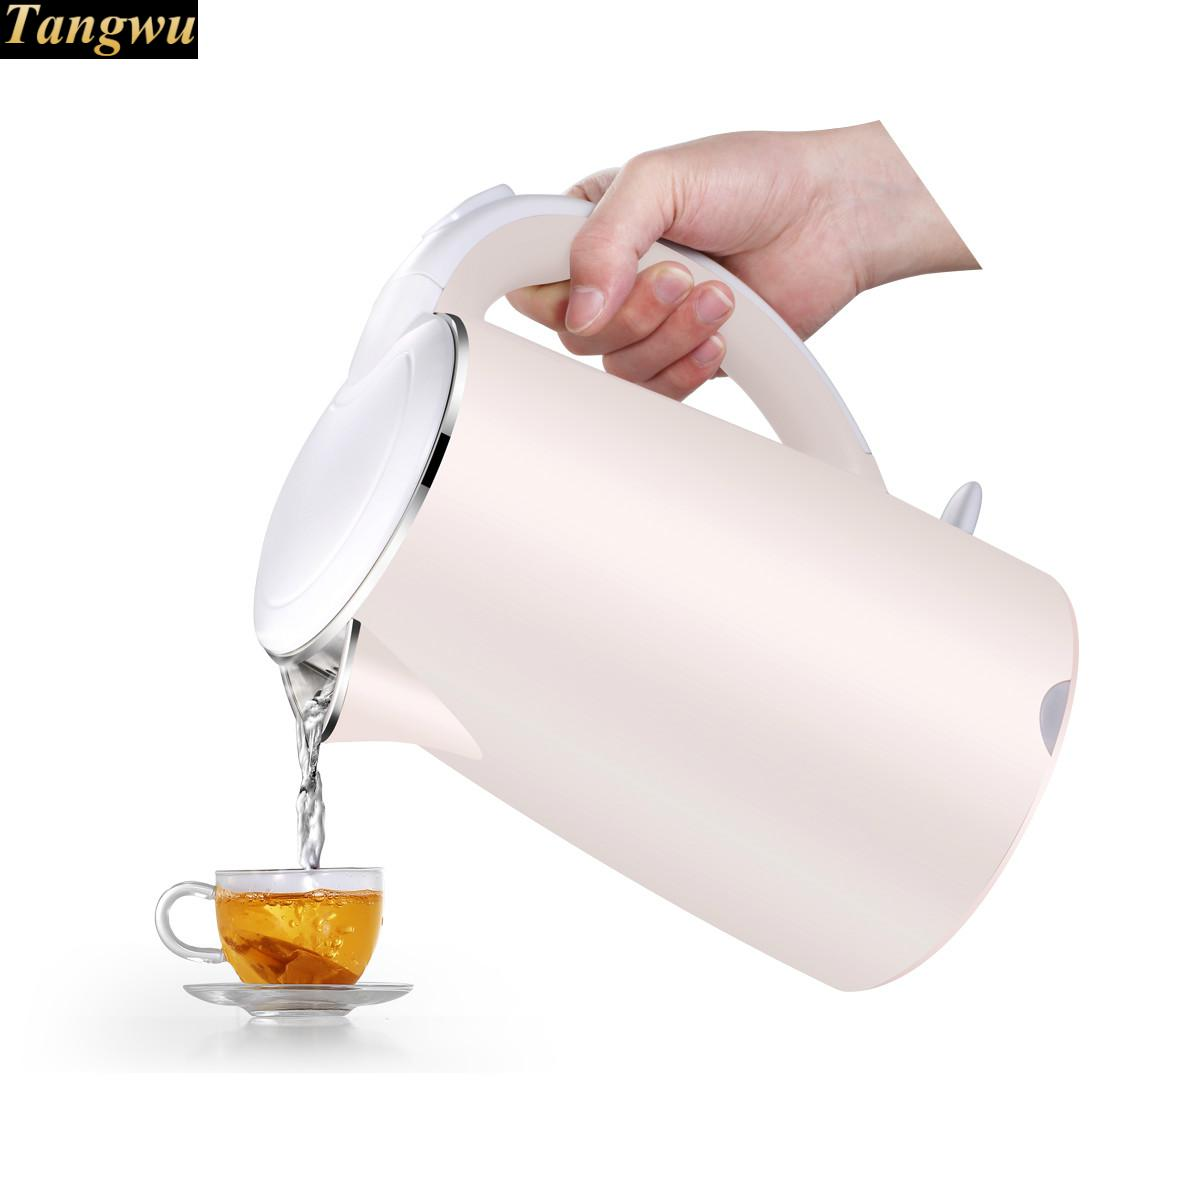 Electric heating kettle household 304 stainless steel fast automatic power - off cukyi stainless steel 1800w electric kettle household 2l safety auto off function quick heating red gold